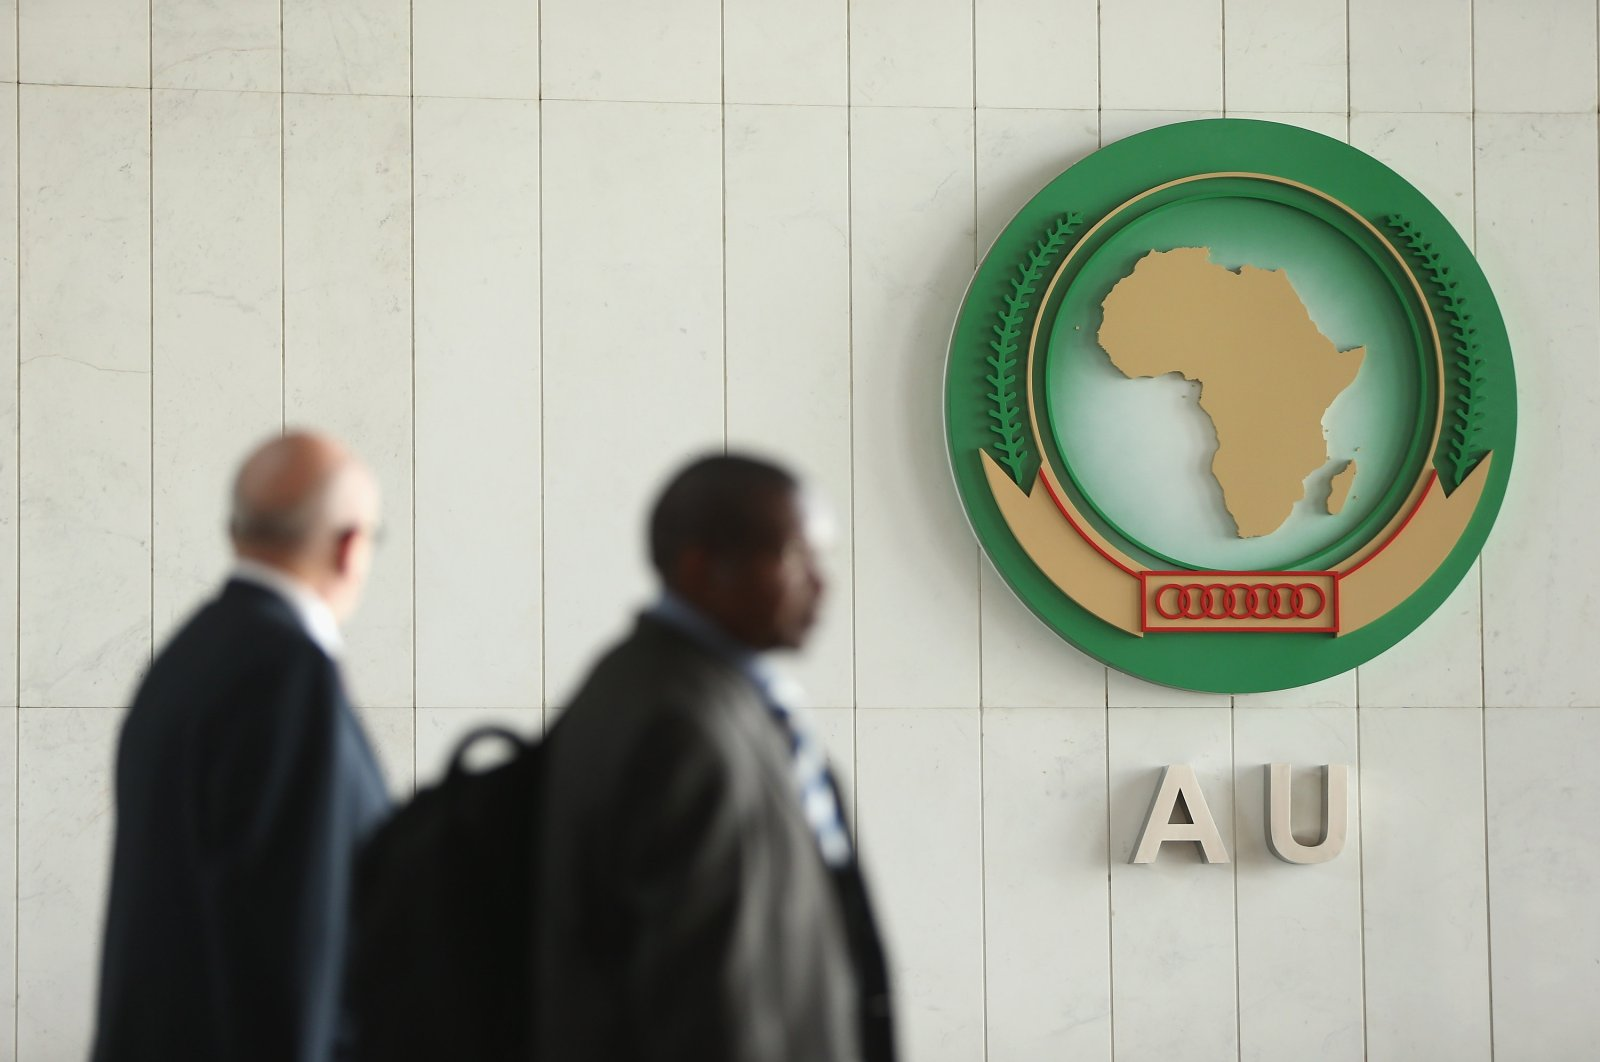 People walk through the main lobby at the headquarters of the African Union in Addis Ababa, Ethiopia, March 18, 2013. (Getty Images)